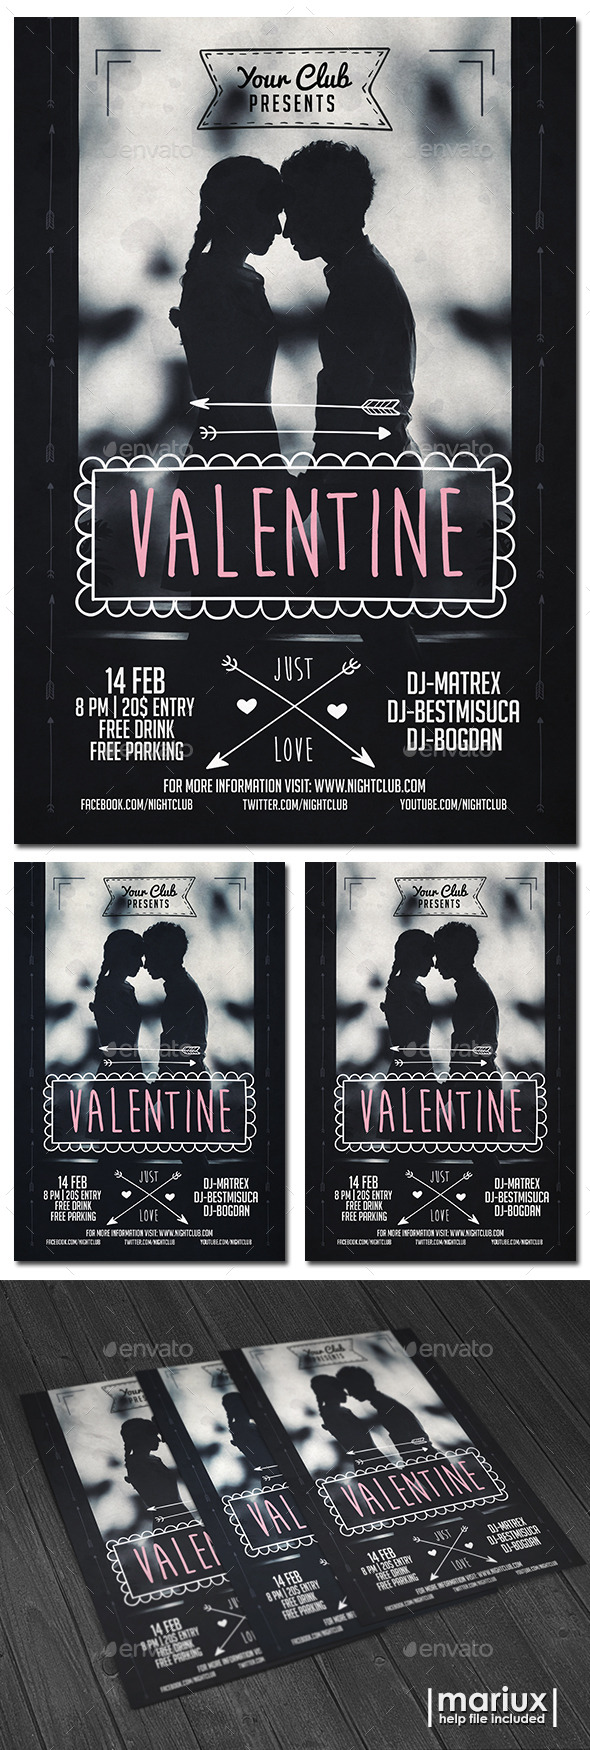 GraphicRiver Valentine Flyer 10098529